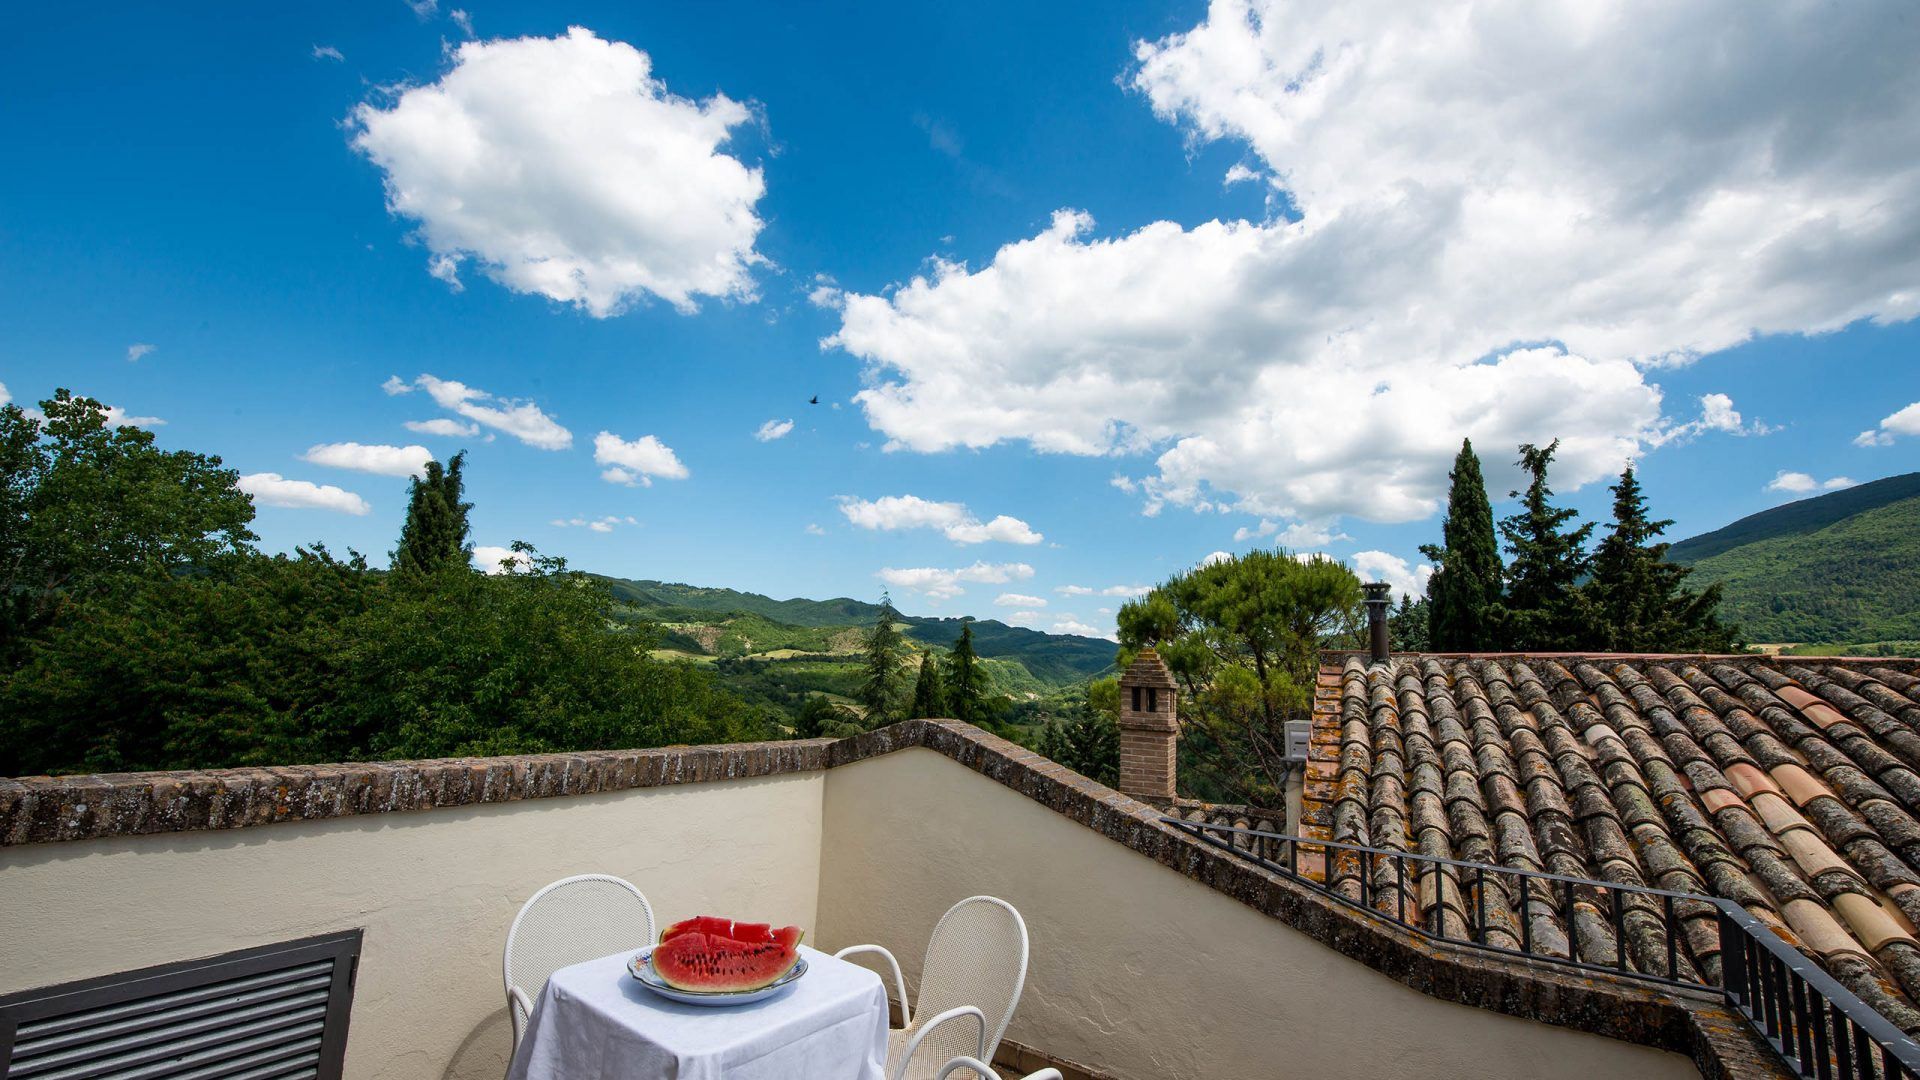 Holiday apartment - Assisi, Umbria - Villamena Resort Assisi